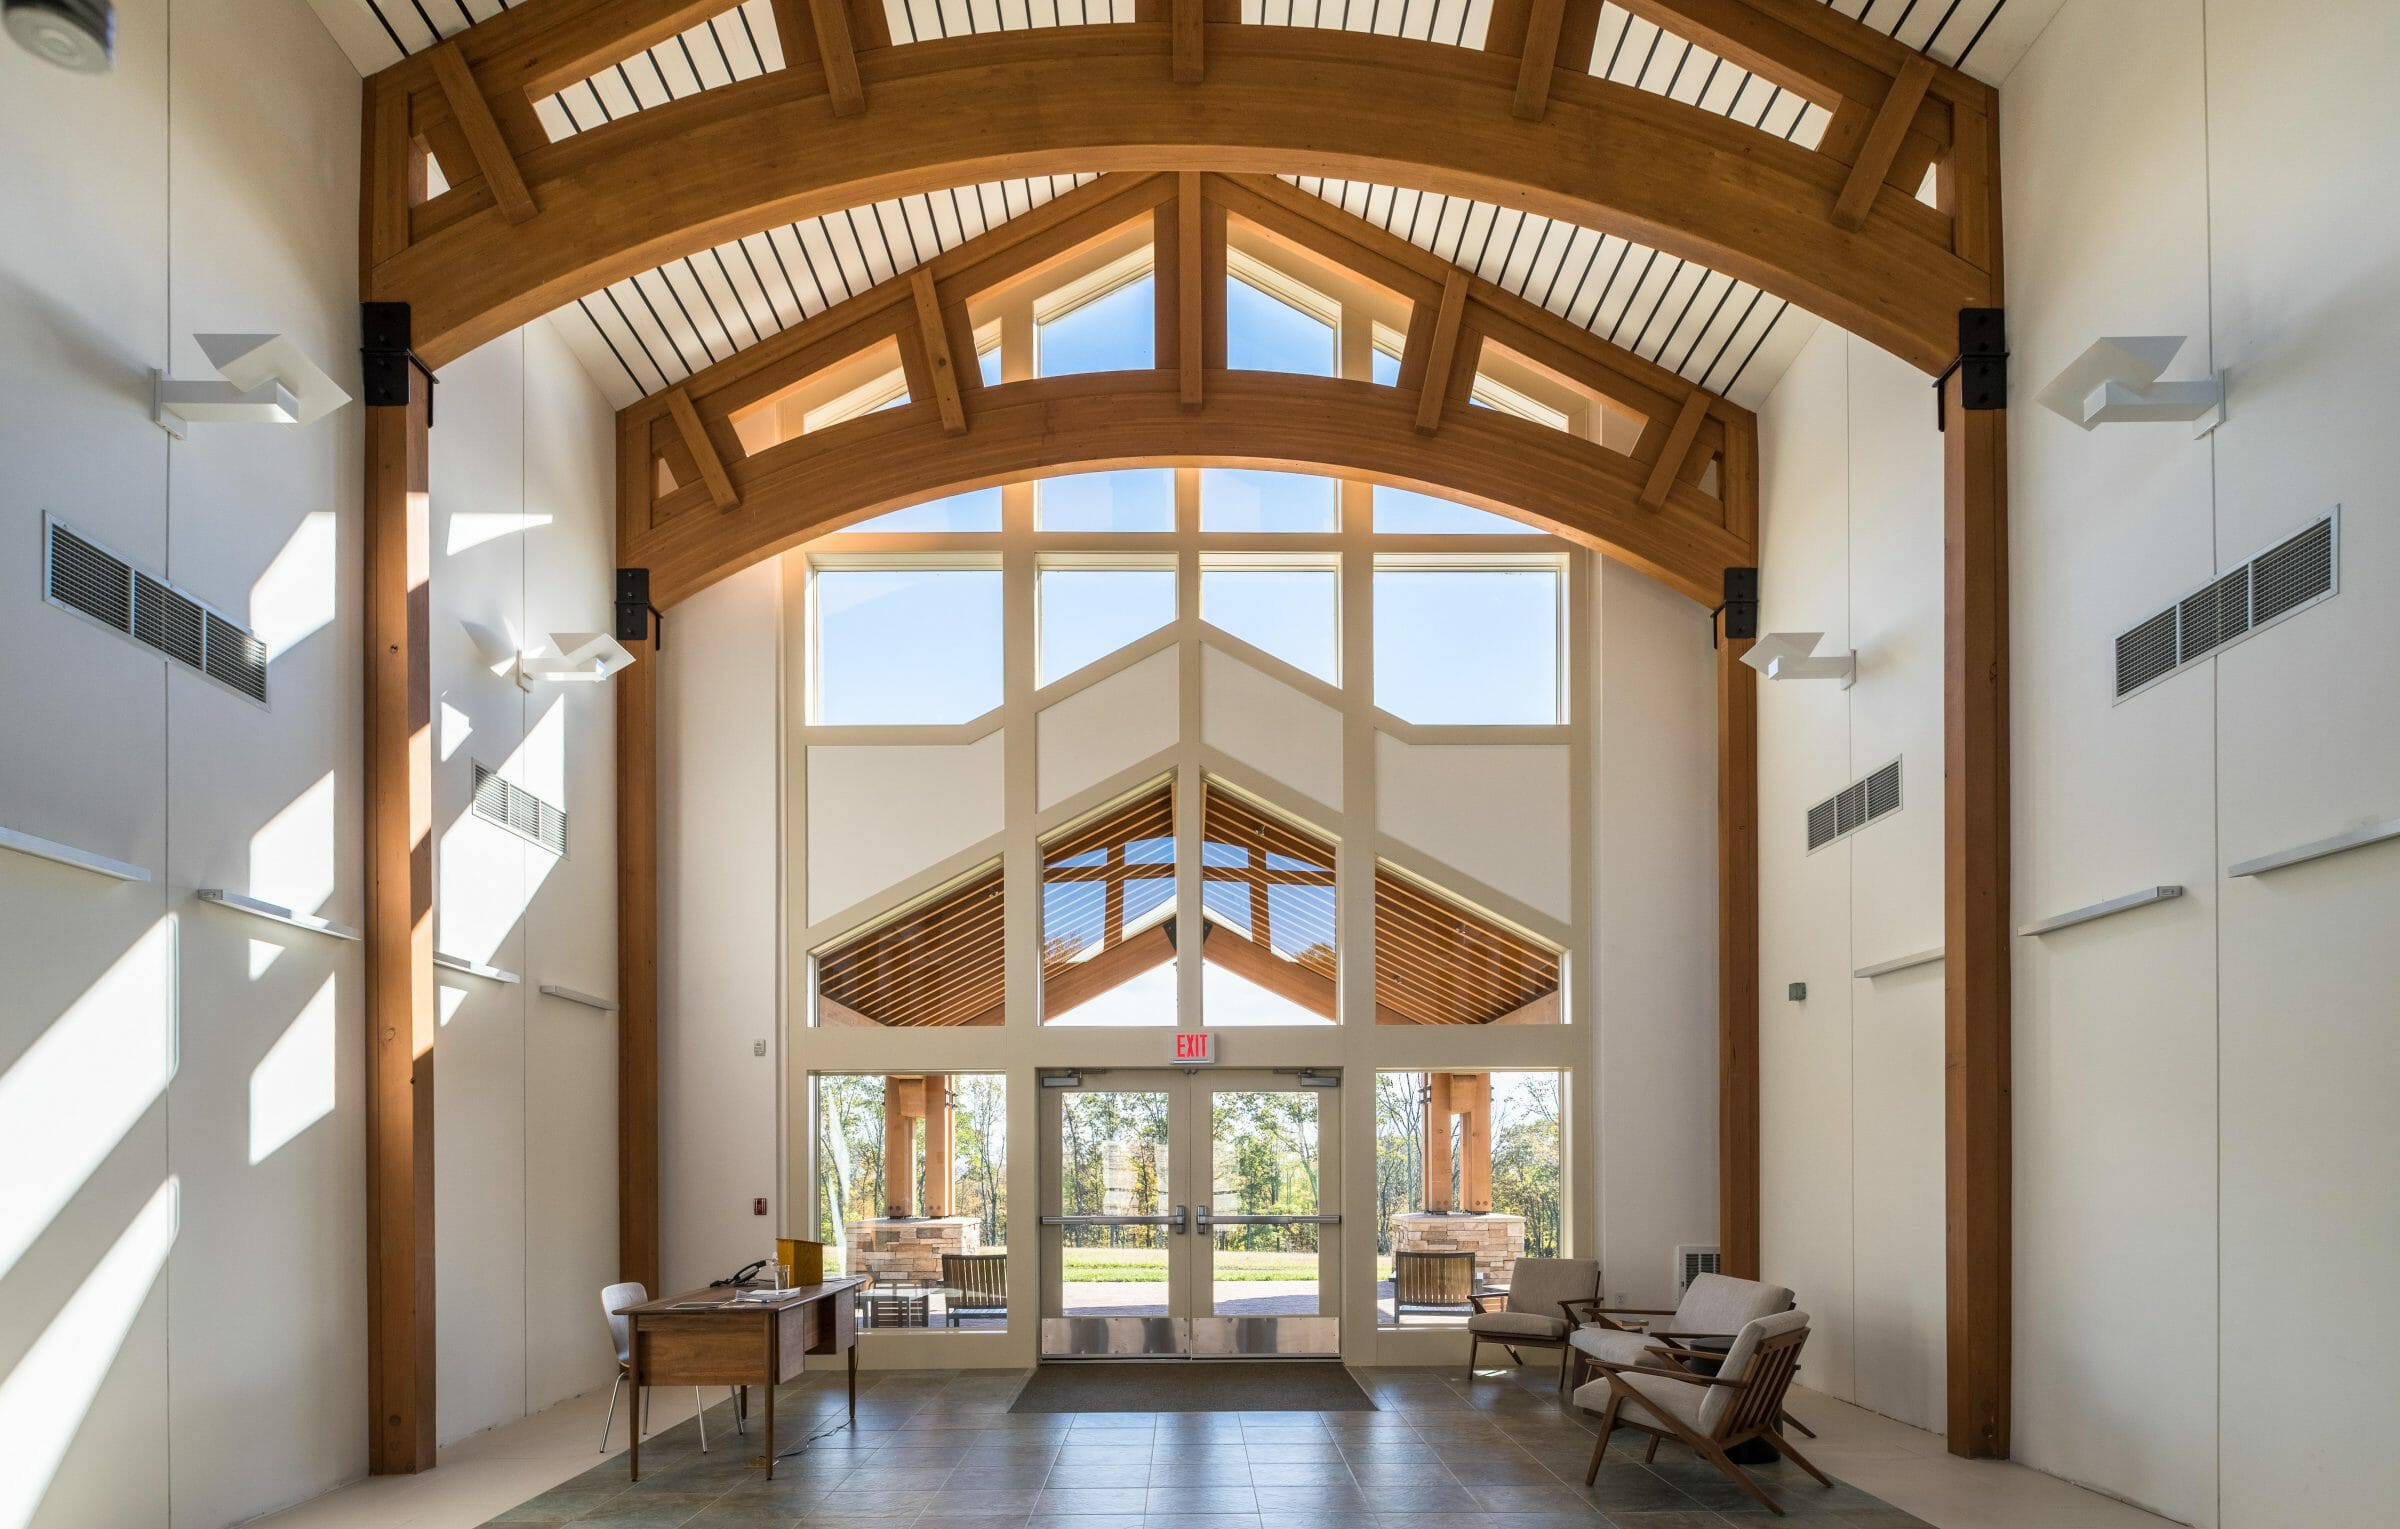 Interior of Mahamudra Buddhist retreat with high ceilings and glulam arches.